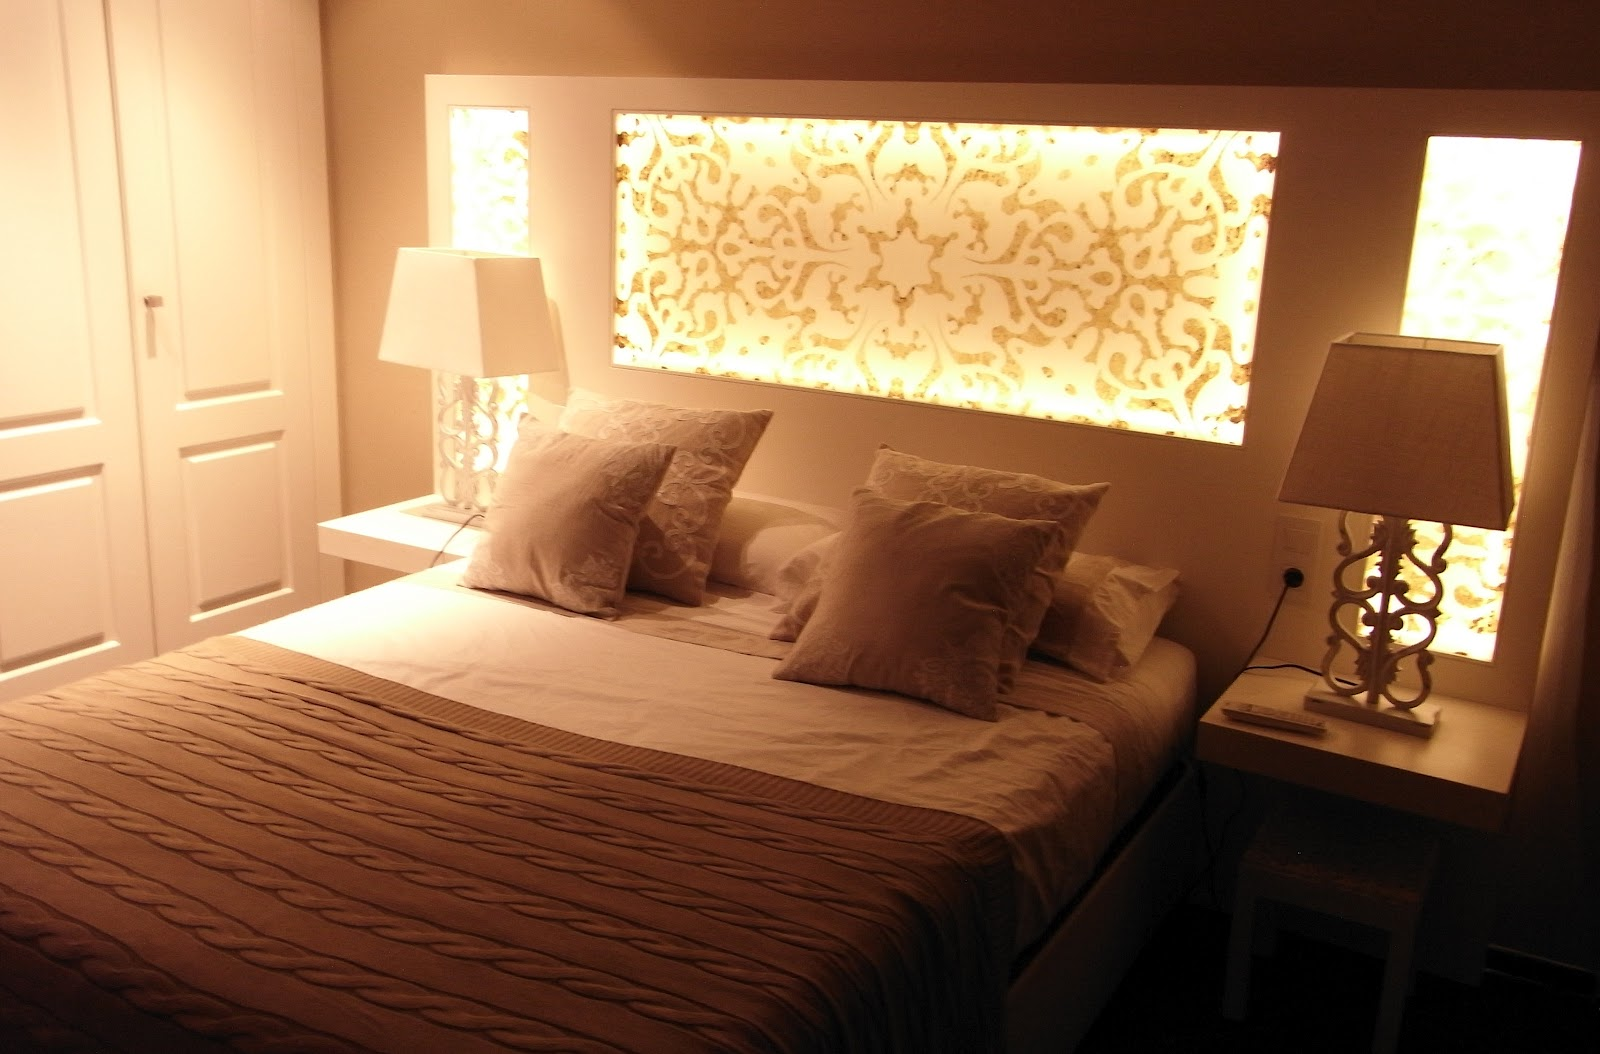 Designs and architects 10 ideas for headboards for beds - Backlit headboard ...